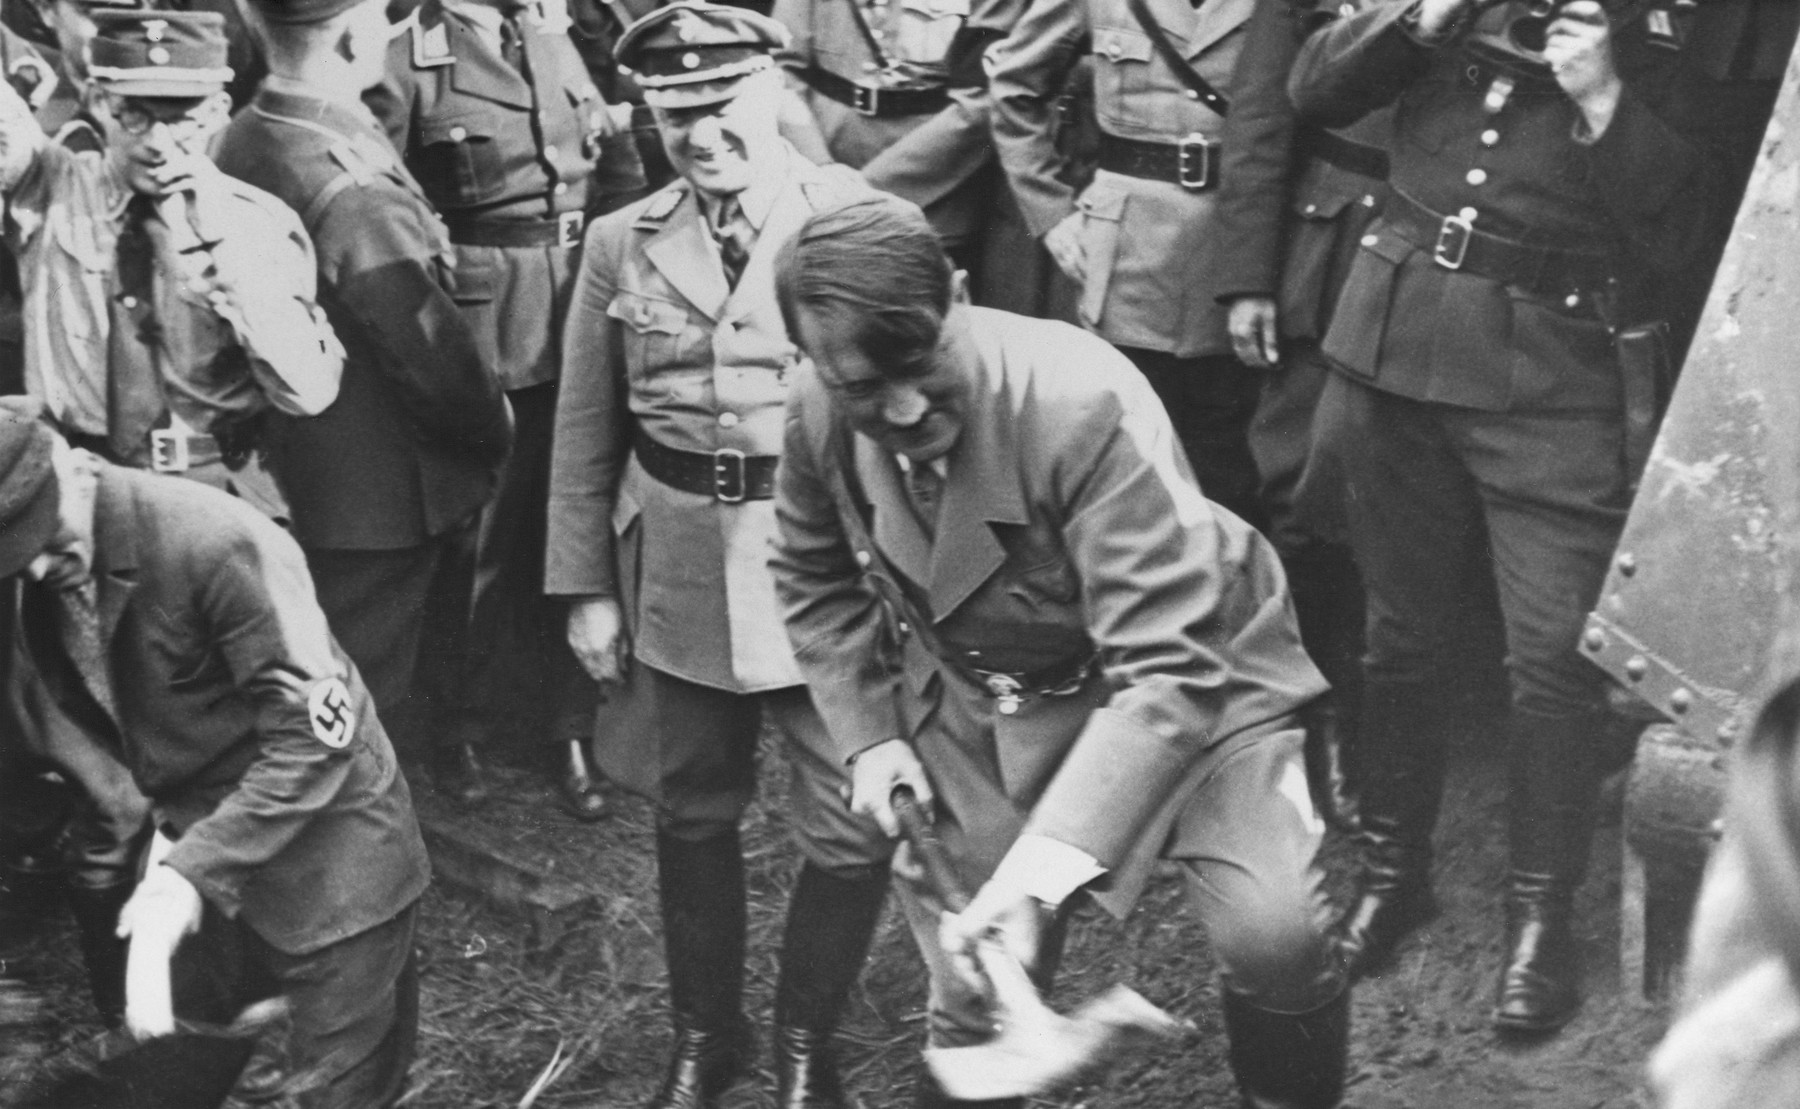 Adolf Hitler wields a spade at the groundbreaking ceremony for construction of the first section of the autobahn from Frankfurt am Main to Darmstadt on September 23, 1933 in Frankfurt.    Standing directly behind Hitler is Jakob Sprenger, Gauleiter of Hessen-Nassau. The picture postcard is addressed to Alfred Lutz in Possneck and is dated September 28, 1933.